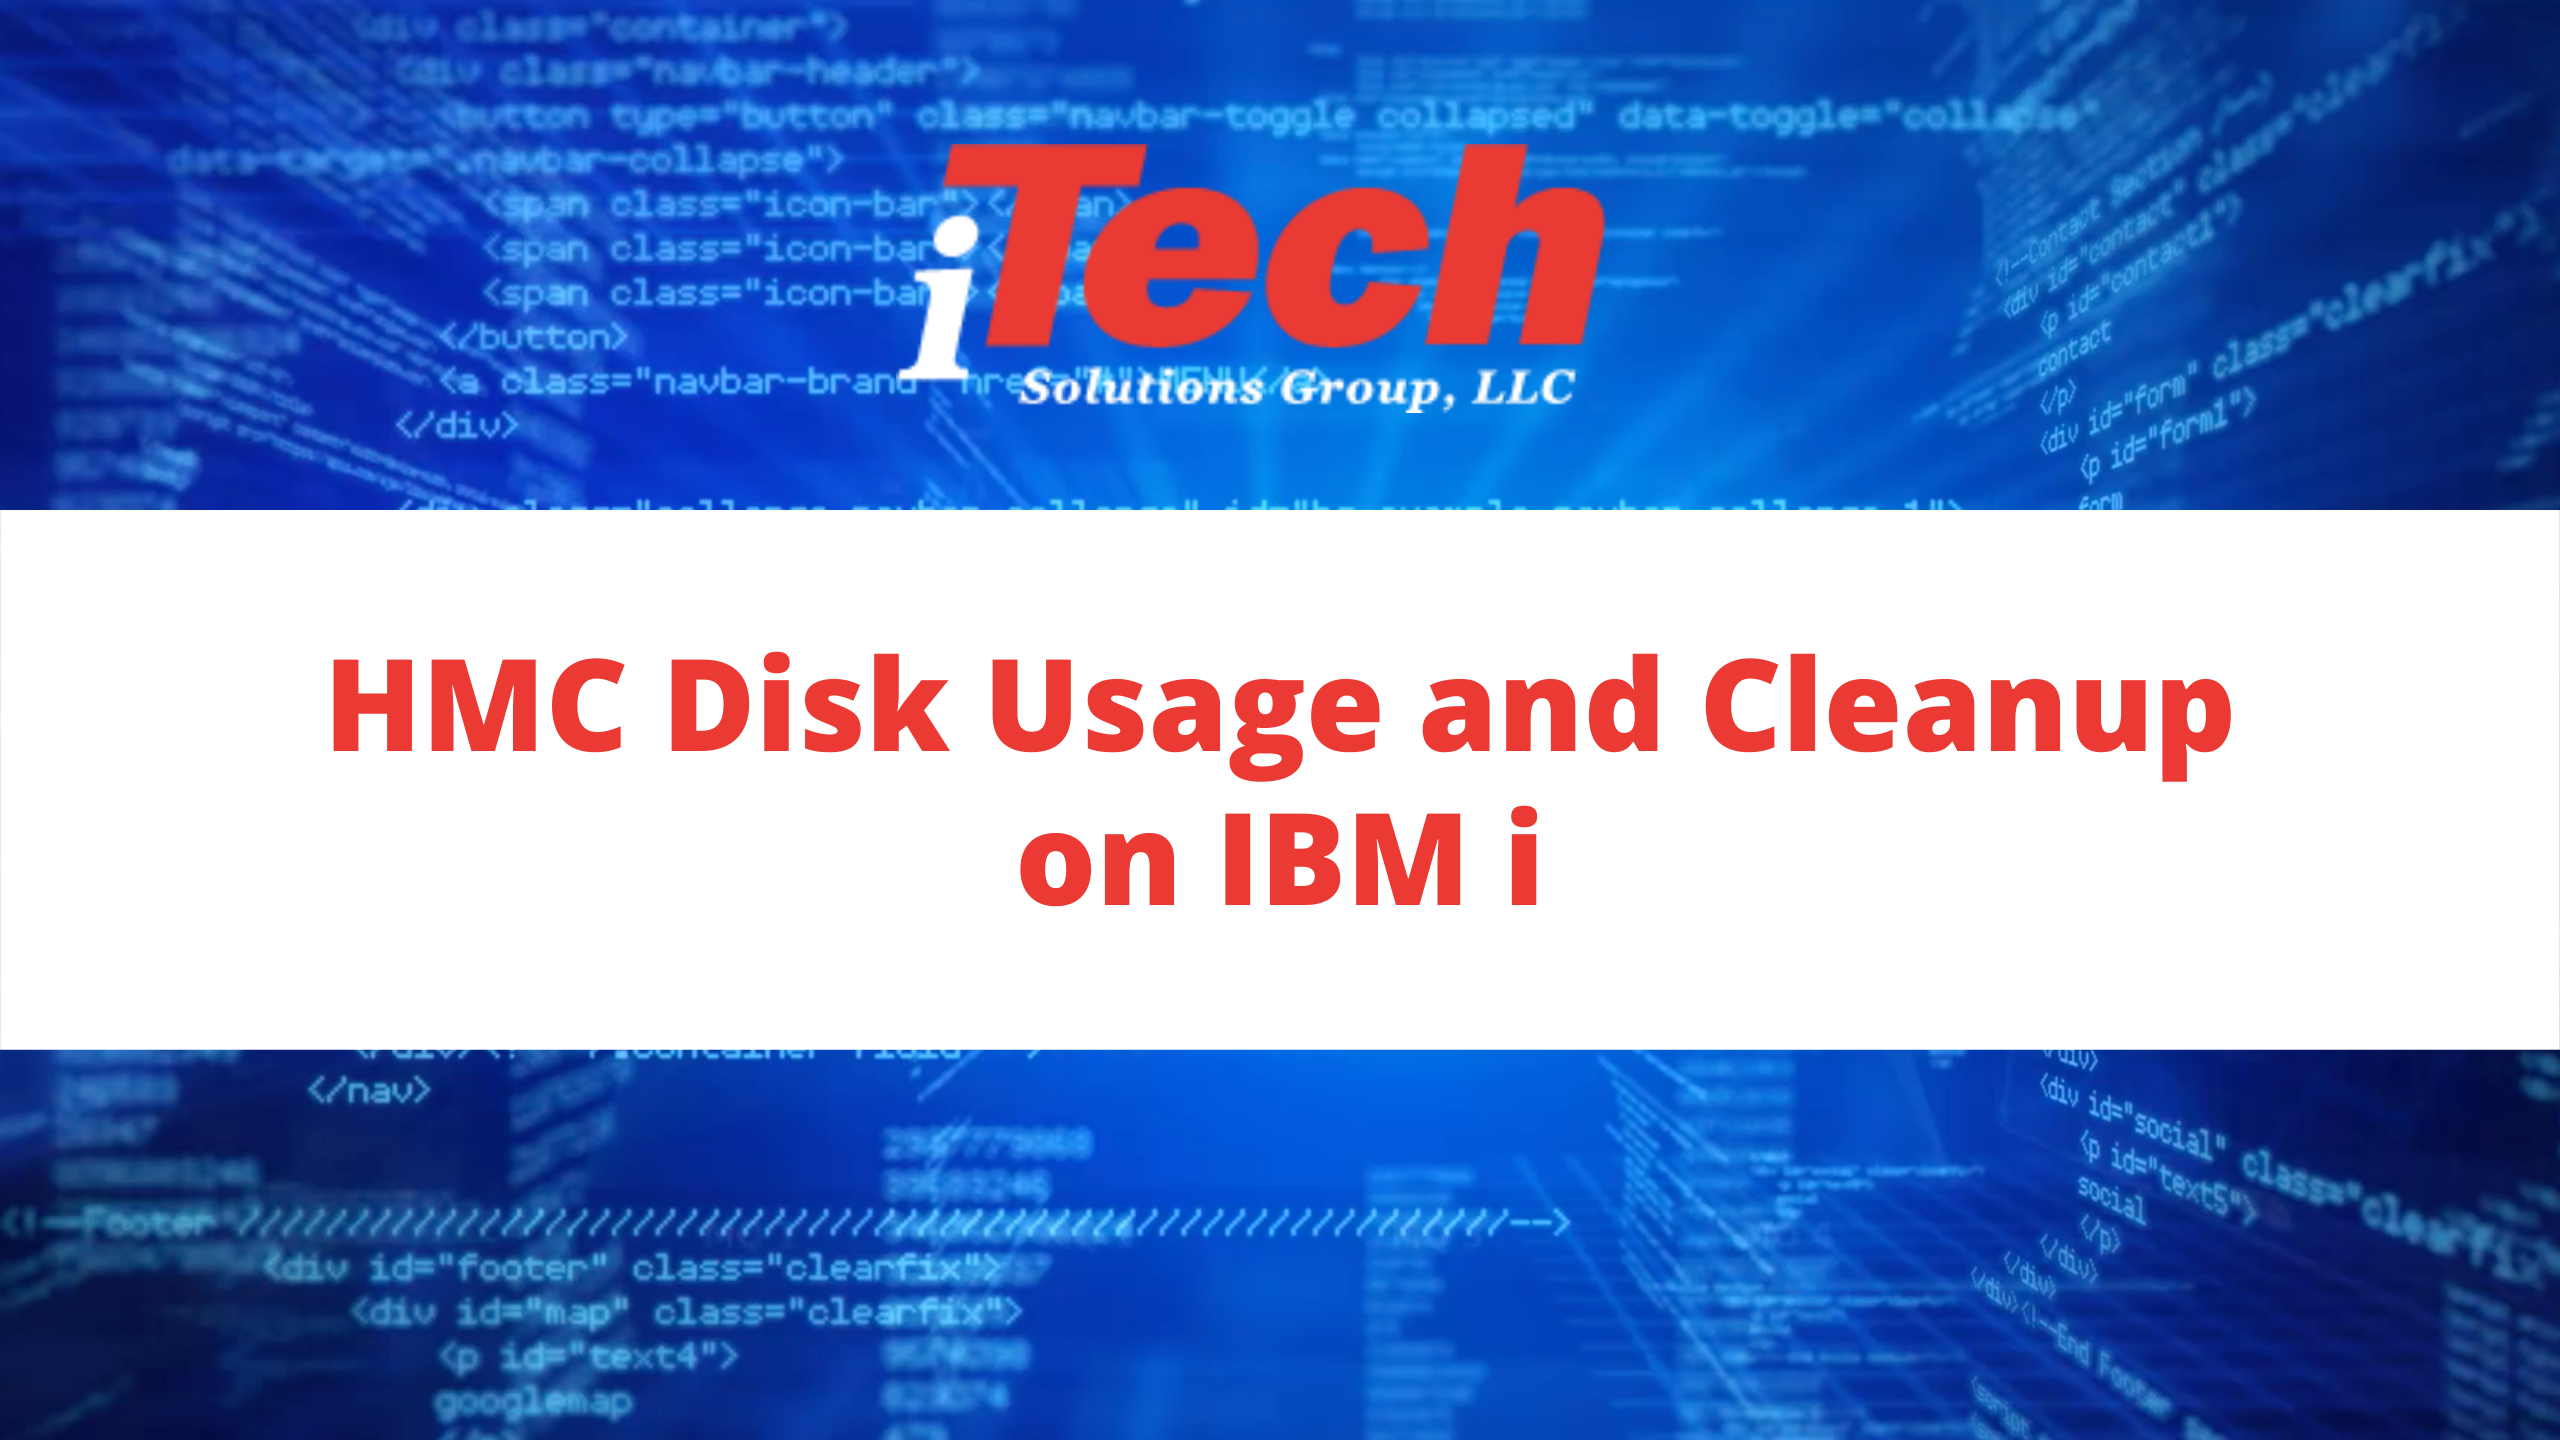 HMC Disk Usage and Cleanup on IBM i